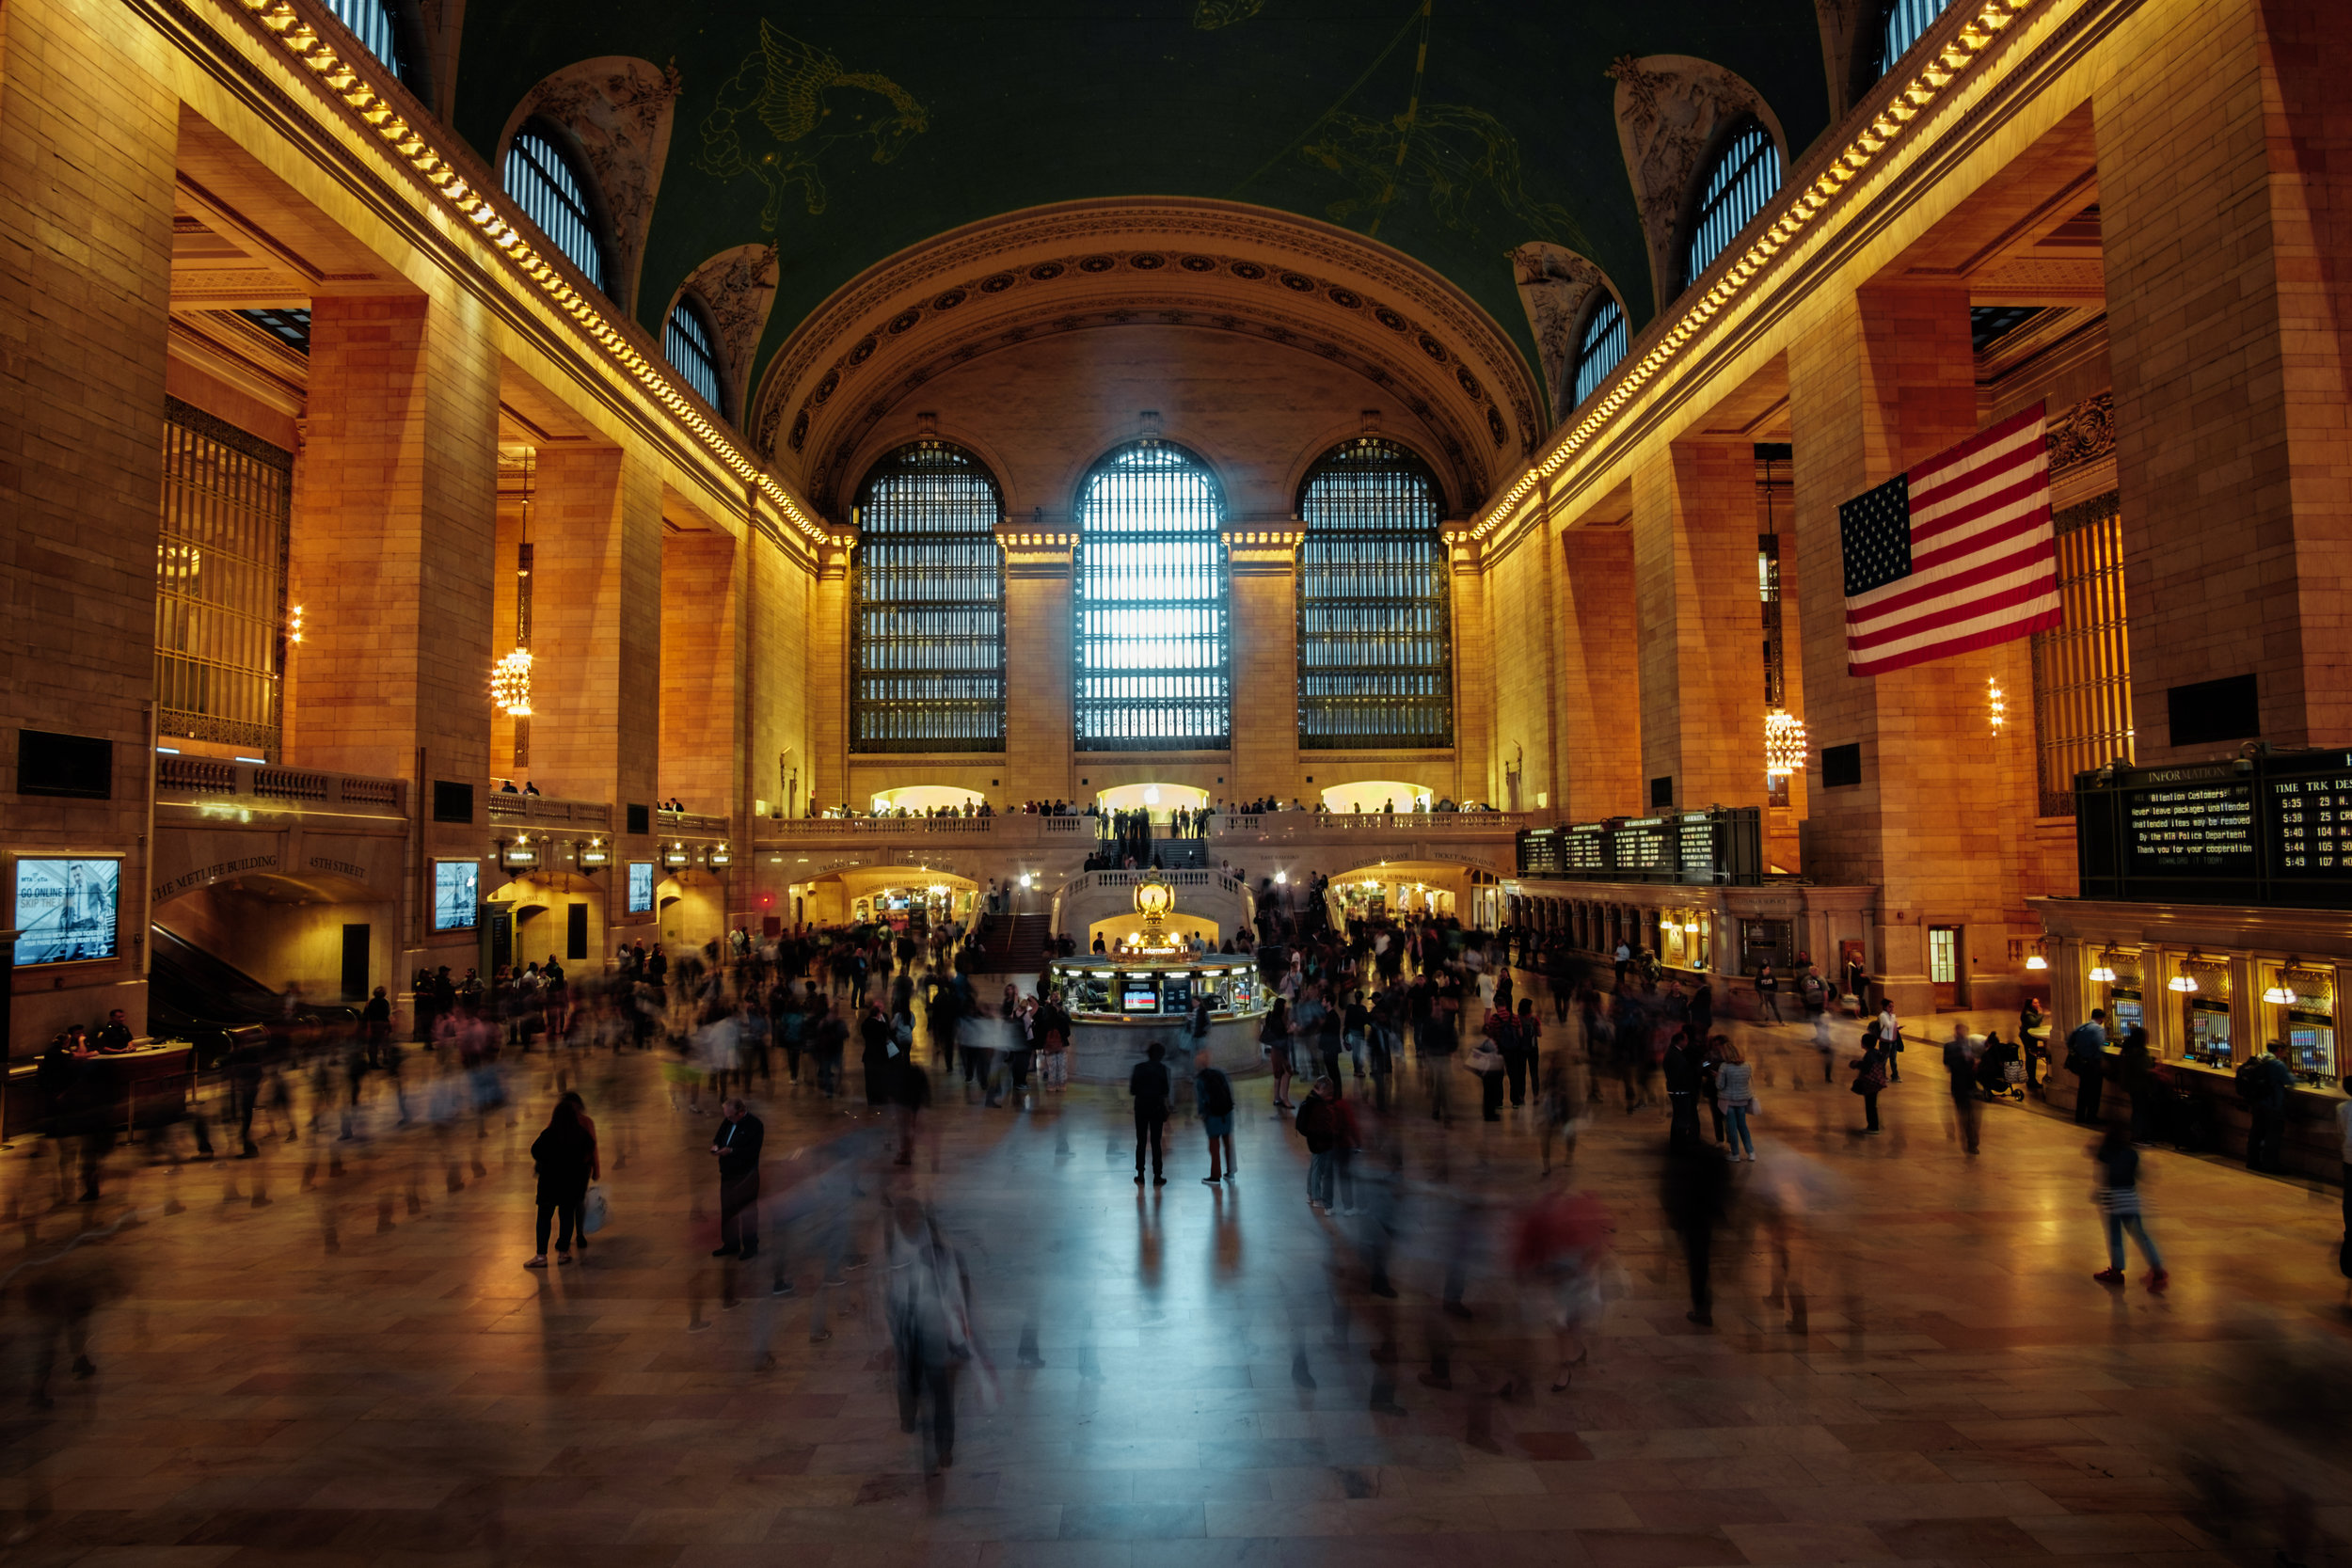 The Grand Central - A classic.